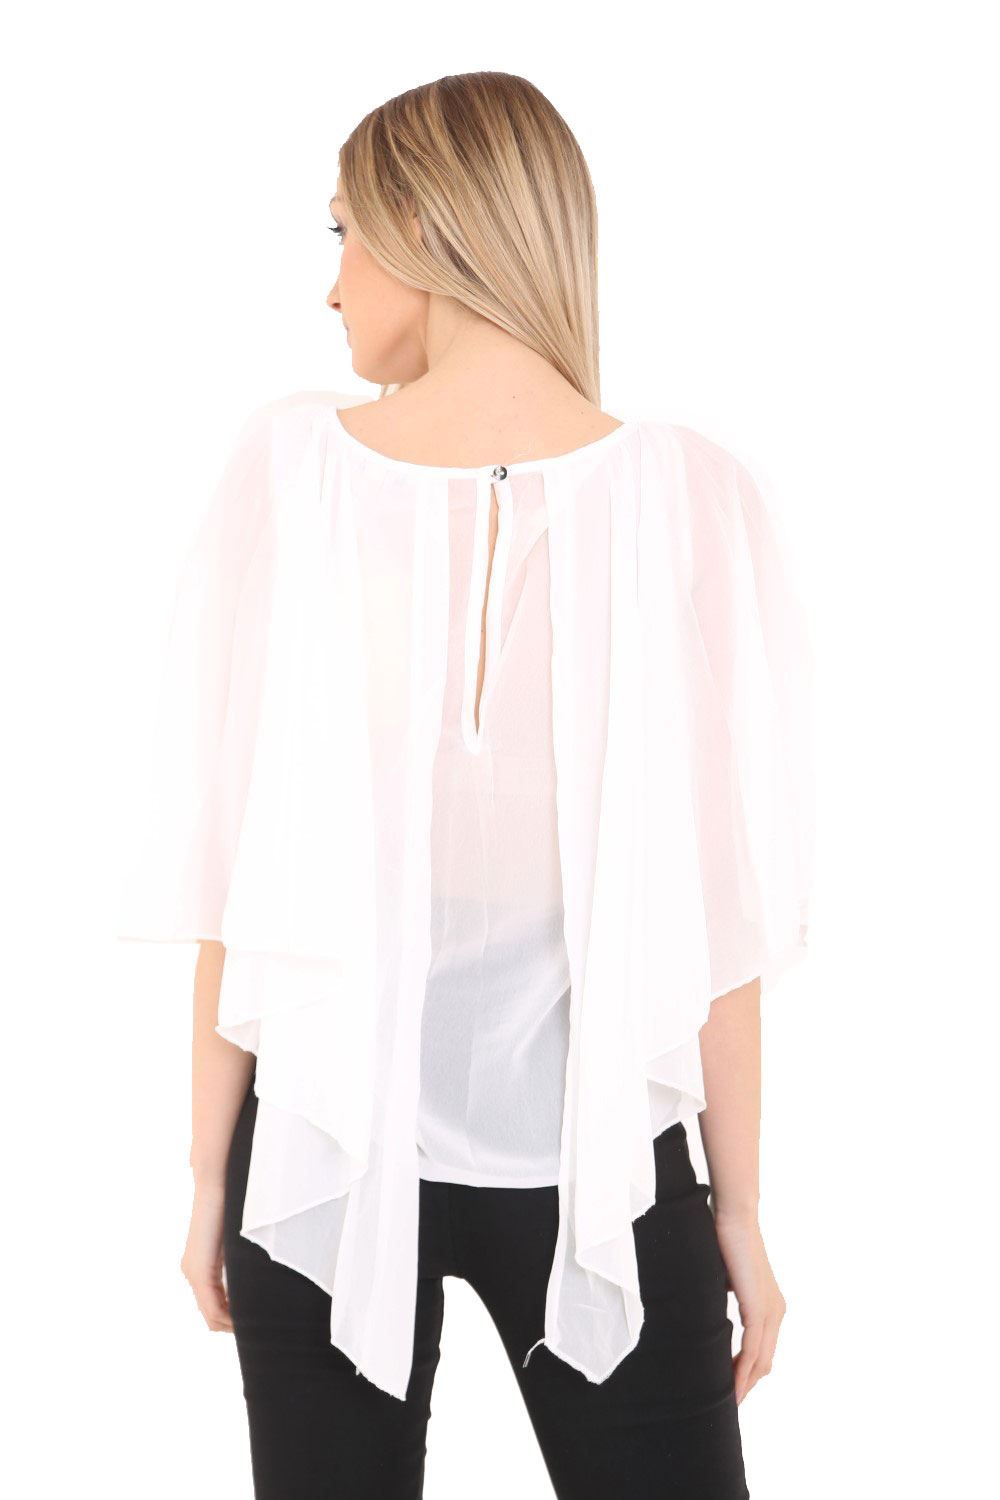 Womens-Ladies-Cape-Grecian-Sleeve-Top-Front-Pleated-Shirt-Chiffon-Blouse